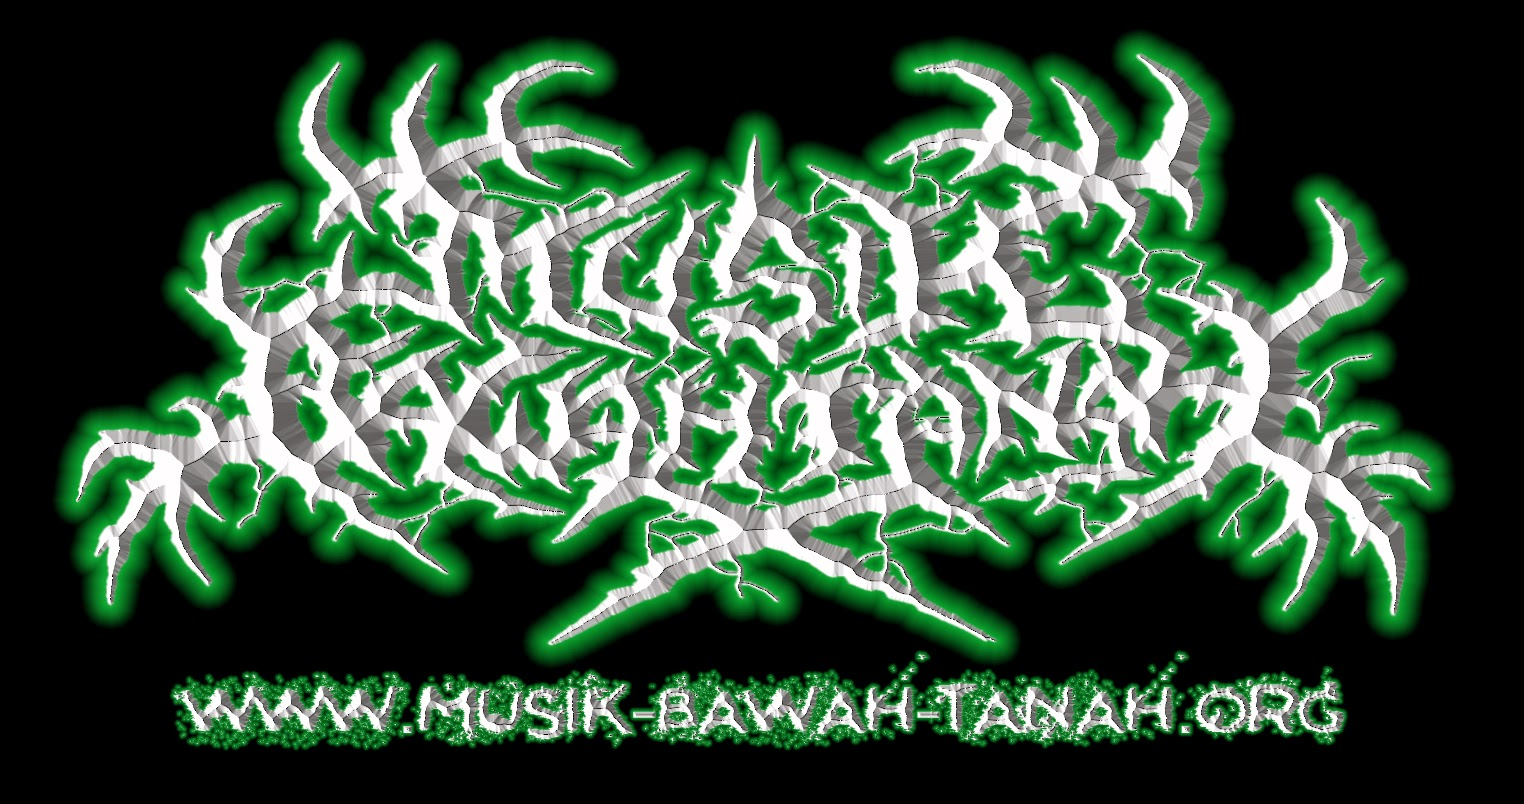 Musik Bawah Tanah | Black Metal | Grindcore | Screamo | Death Metal | Punk Rock | Hardcore | Metalcore | Gothic Metal | Deathcore | Artwork 7